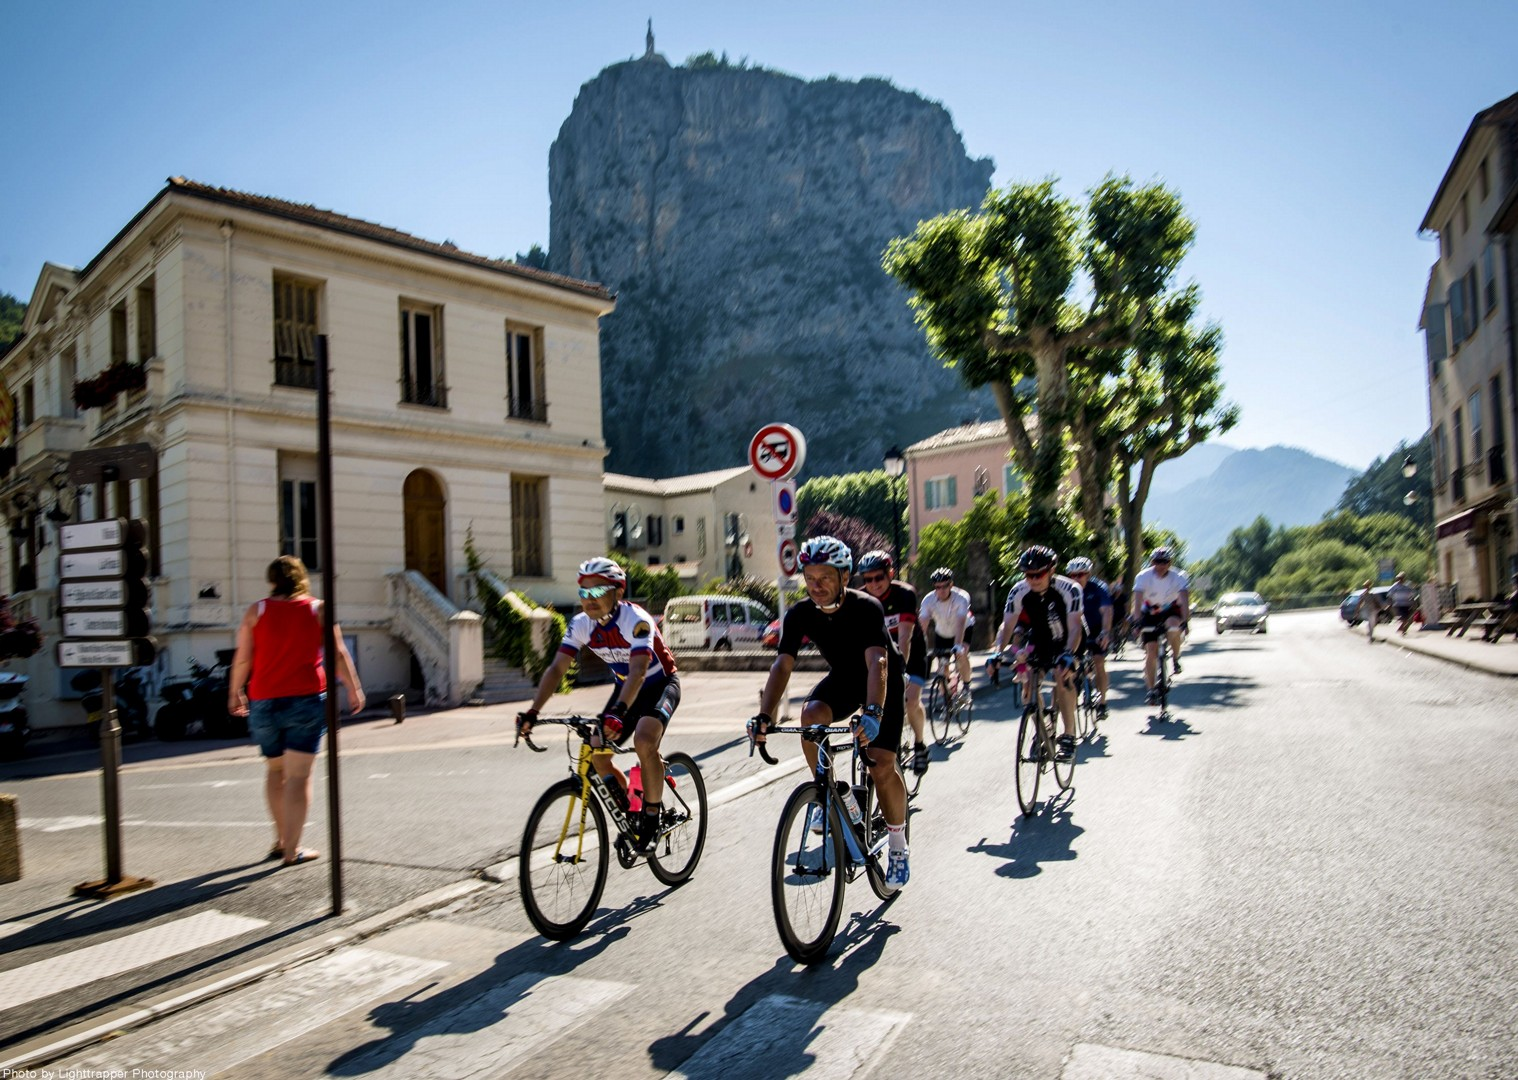 culture-town-utelle-road-bike-peloton-france.jpg - France - Provence - Alpes Maritimes - Guided Road Cycling Holiday - Road Cycling